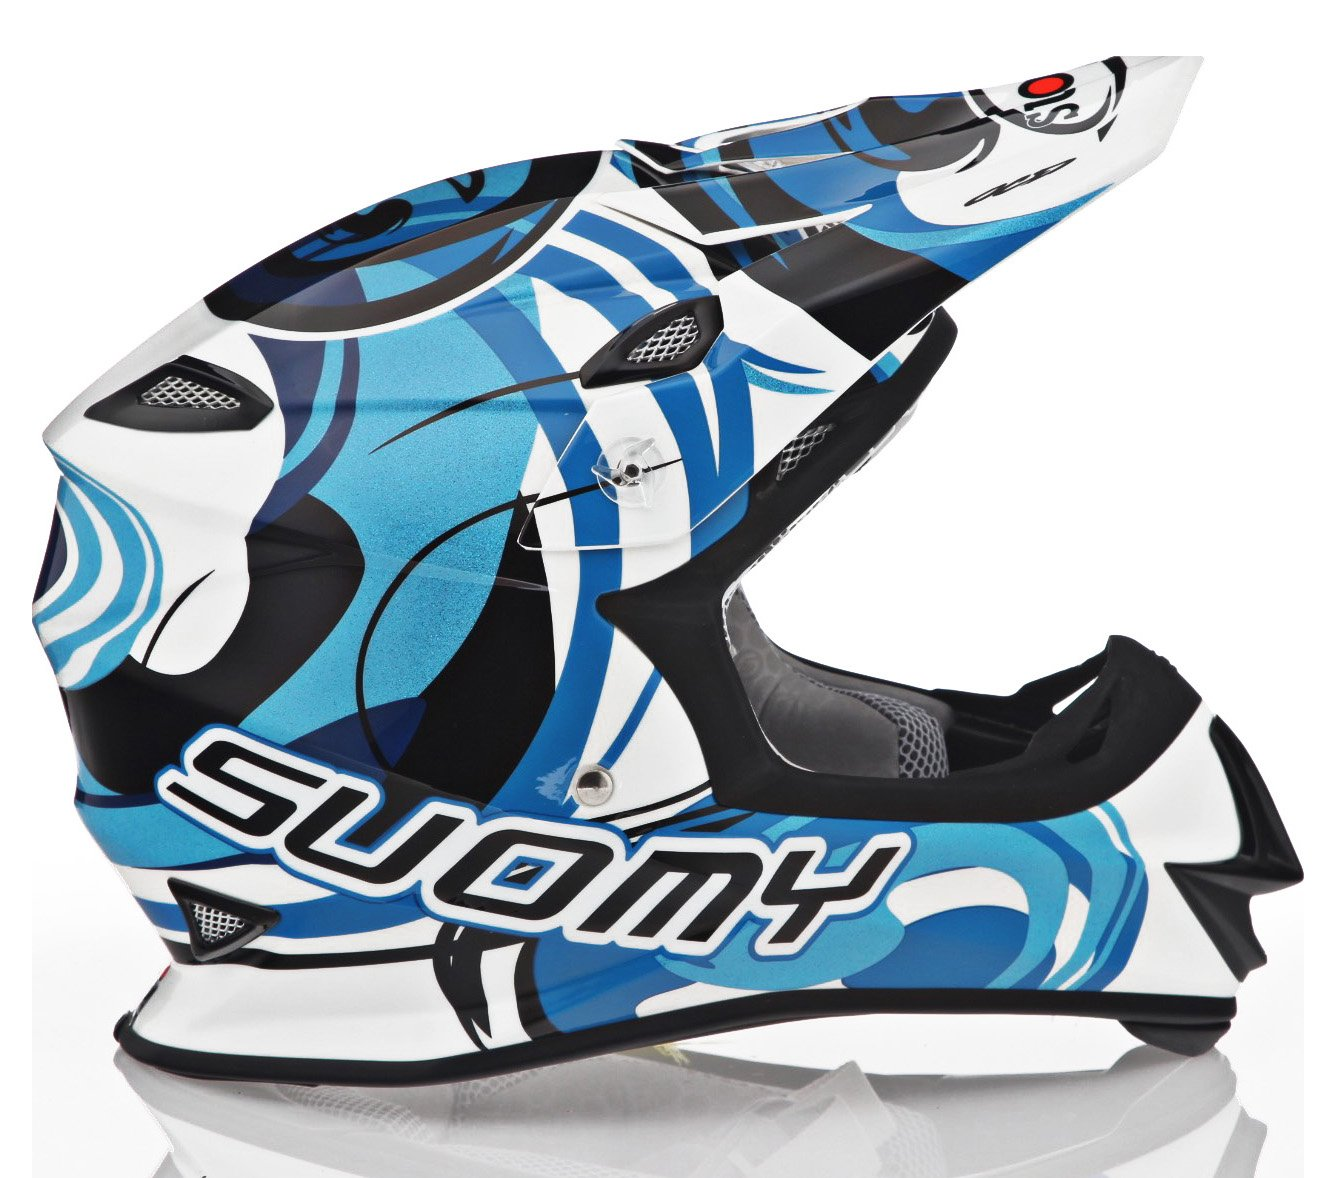 Amazon.com: Suomy MX Jump Vortex azul casco, S, Azul: Automotive